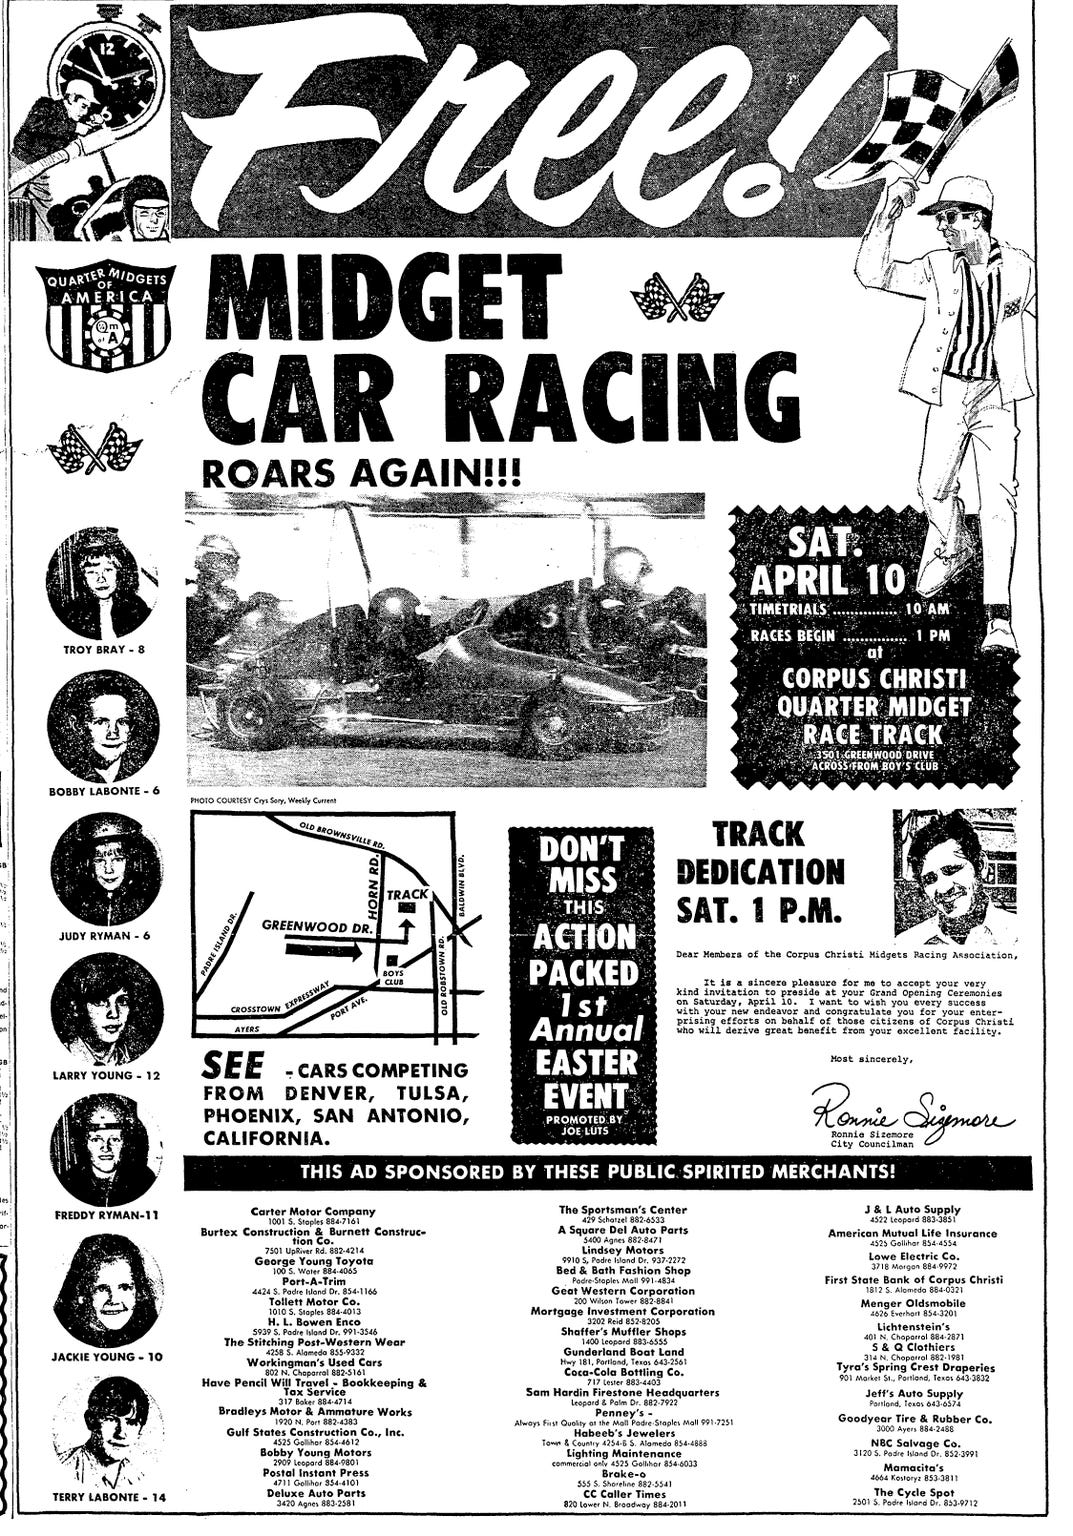 An ad in the April 9, 1971 Corpus Christi Times for the dedication of the Corpus Christi Quarter Midget Race Track featured photos of Bobby Labonte, 6, and Terry Labonte, 14.